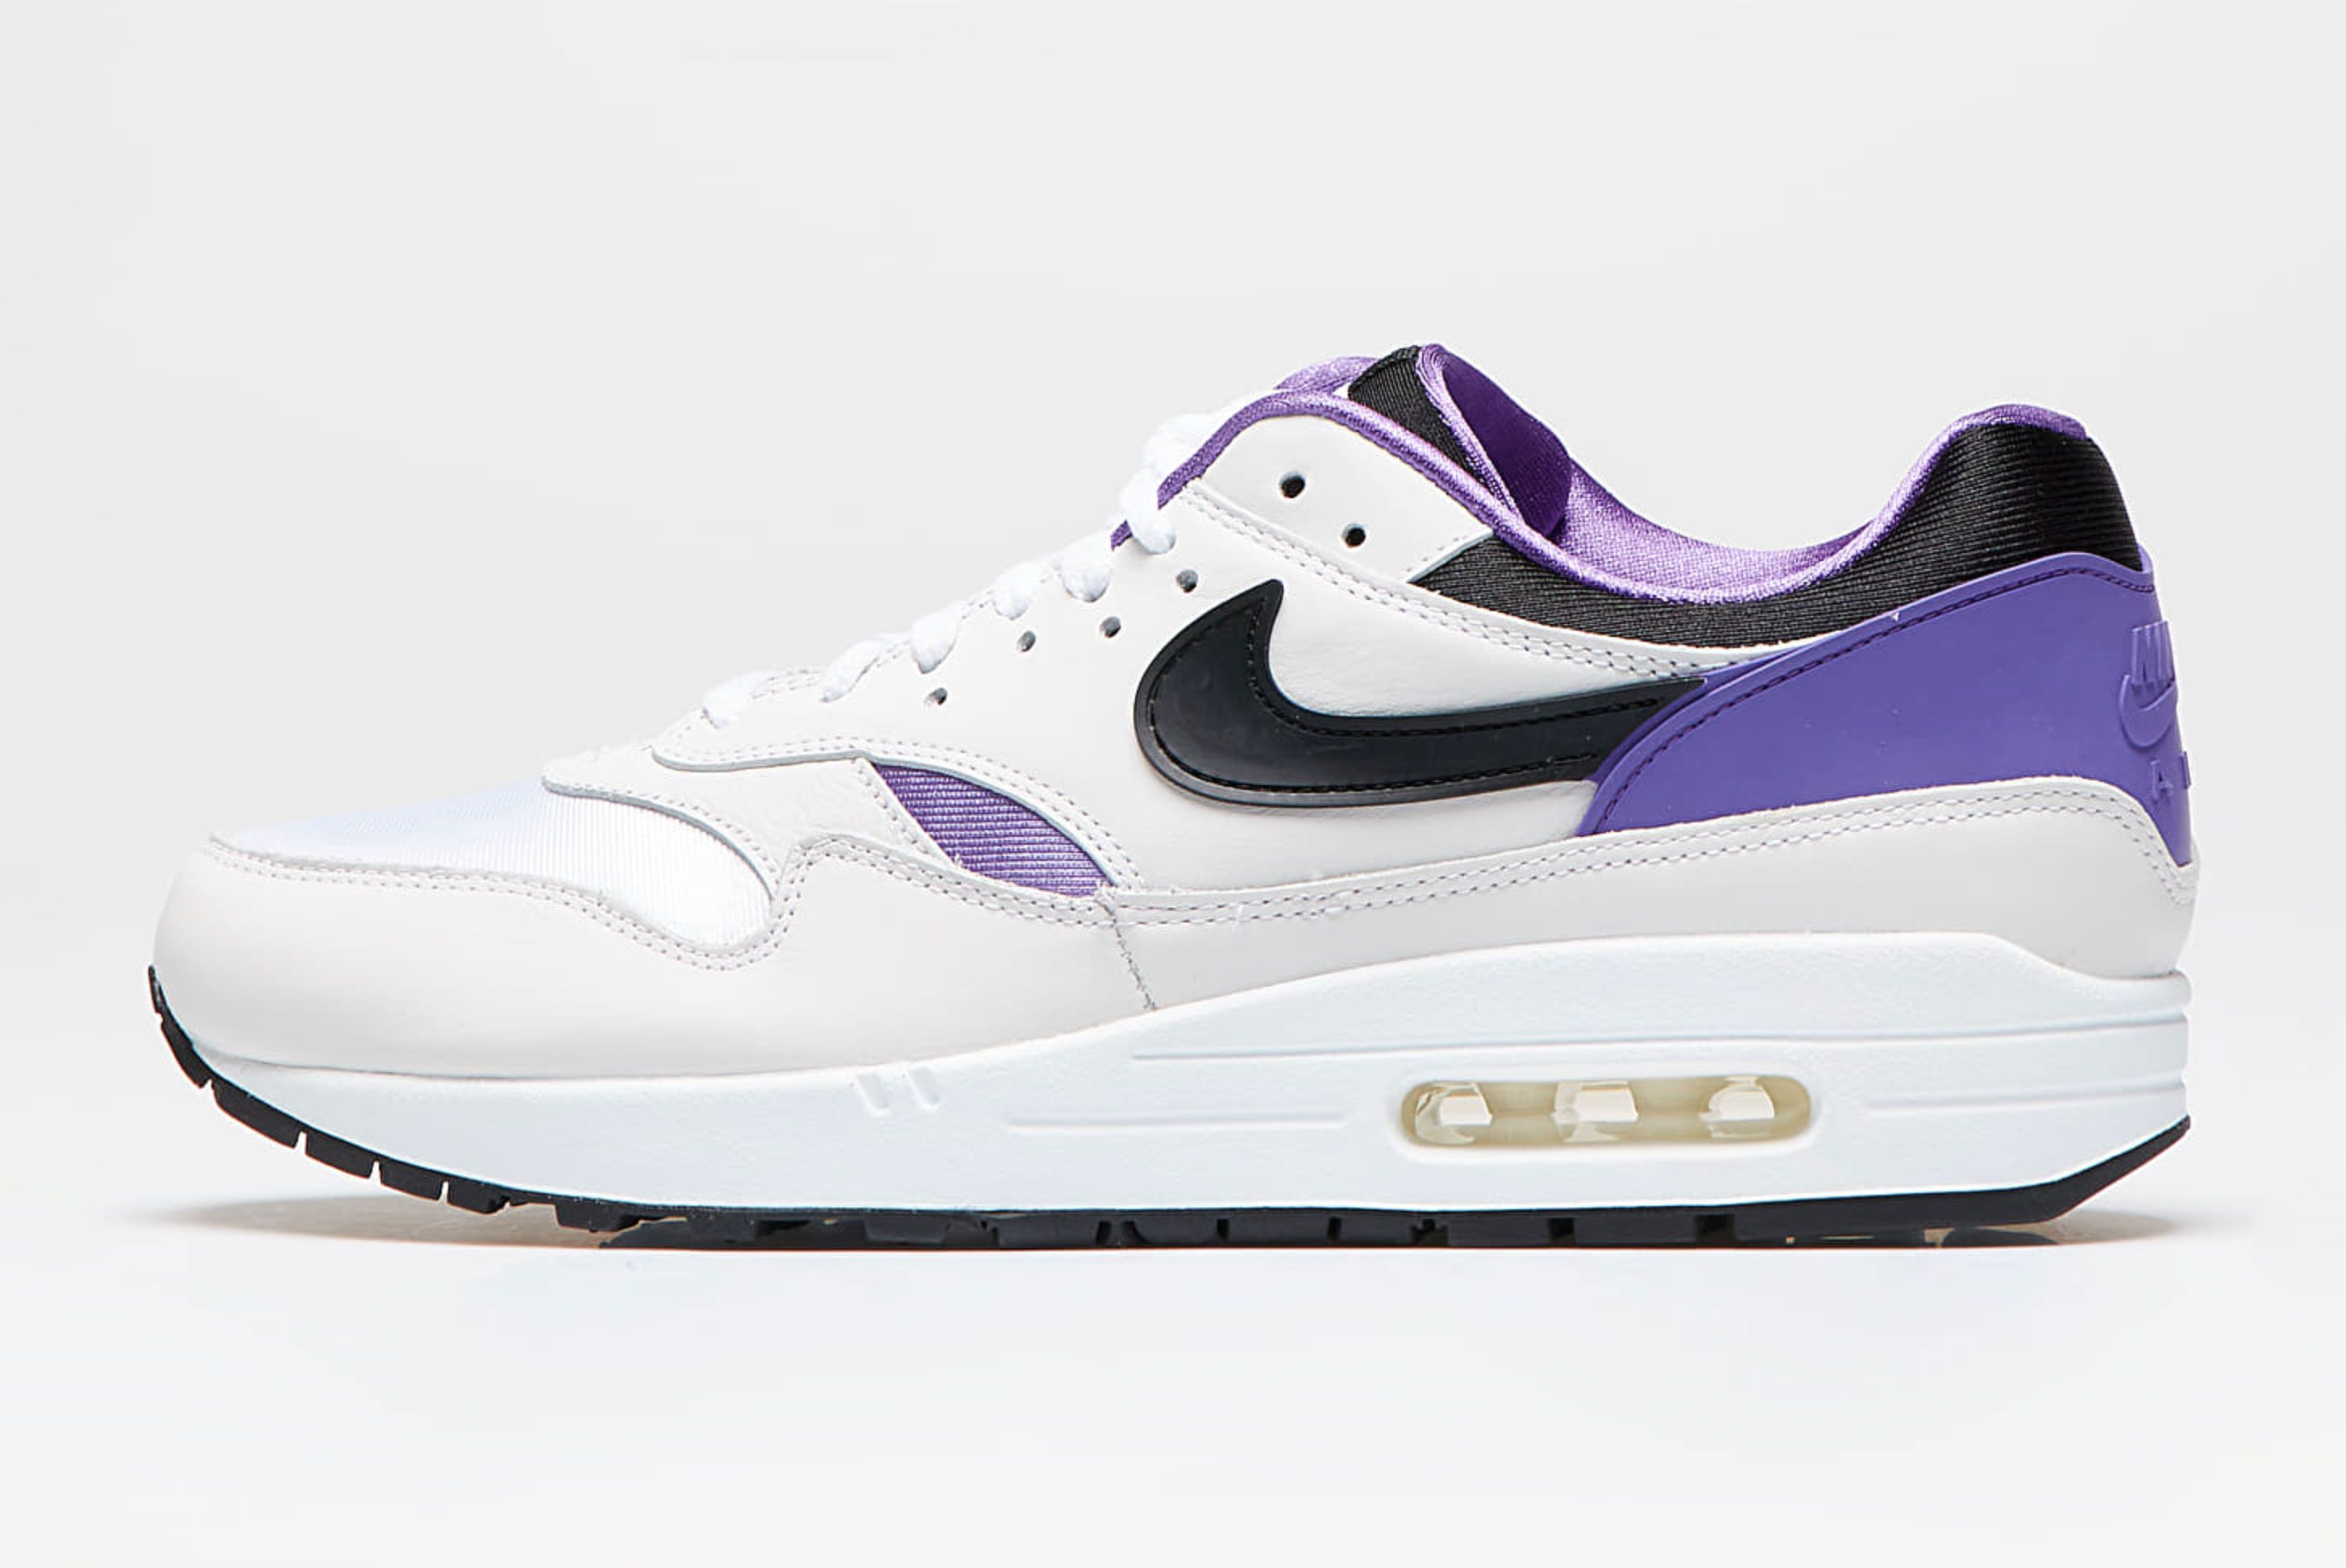 Nike Air Max 1 DNA CH.1 (Purple Punch)